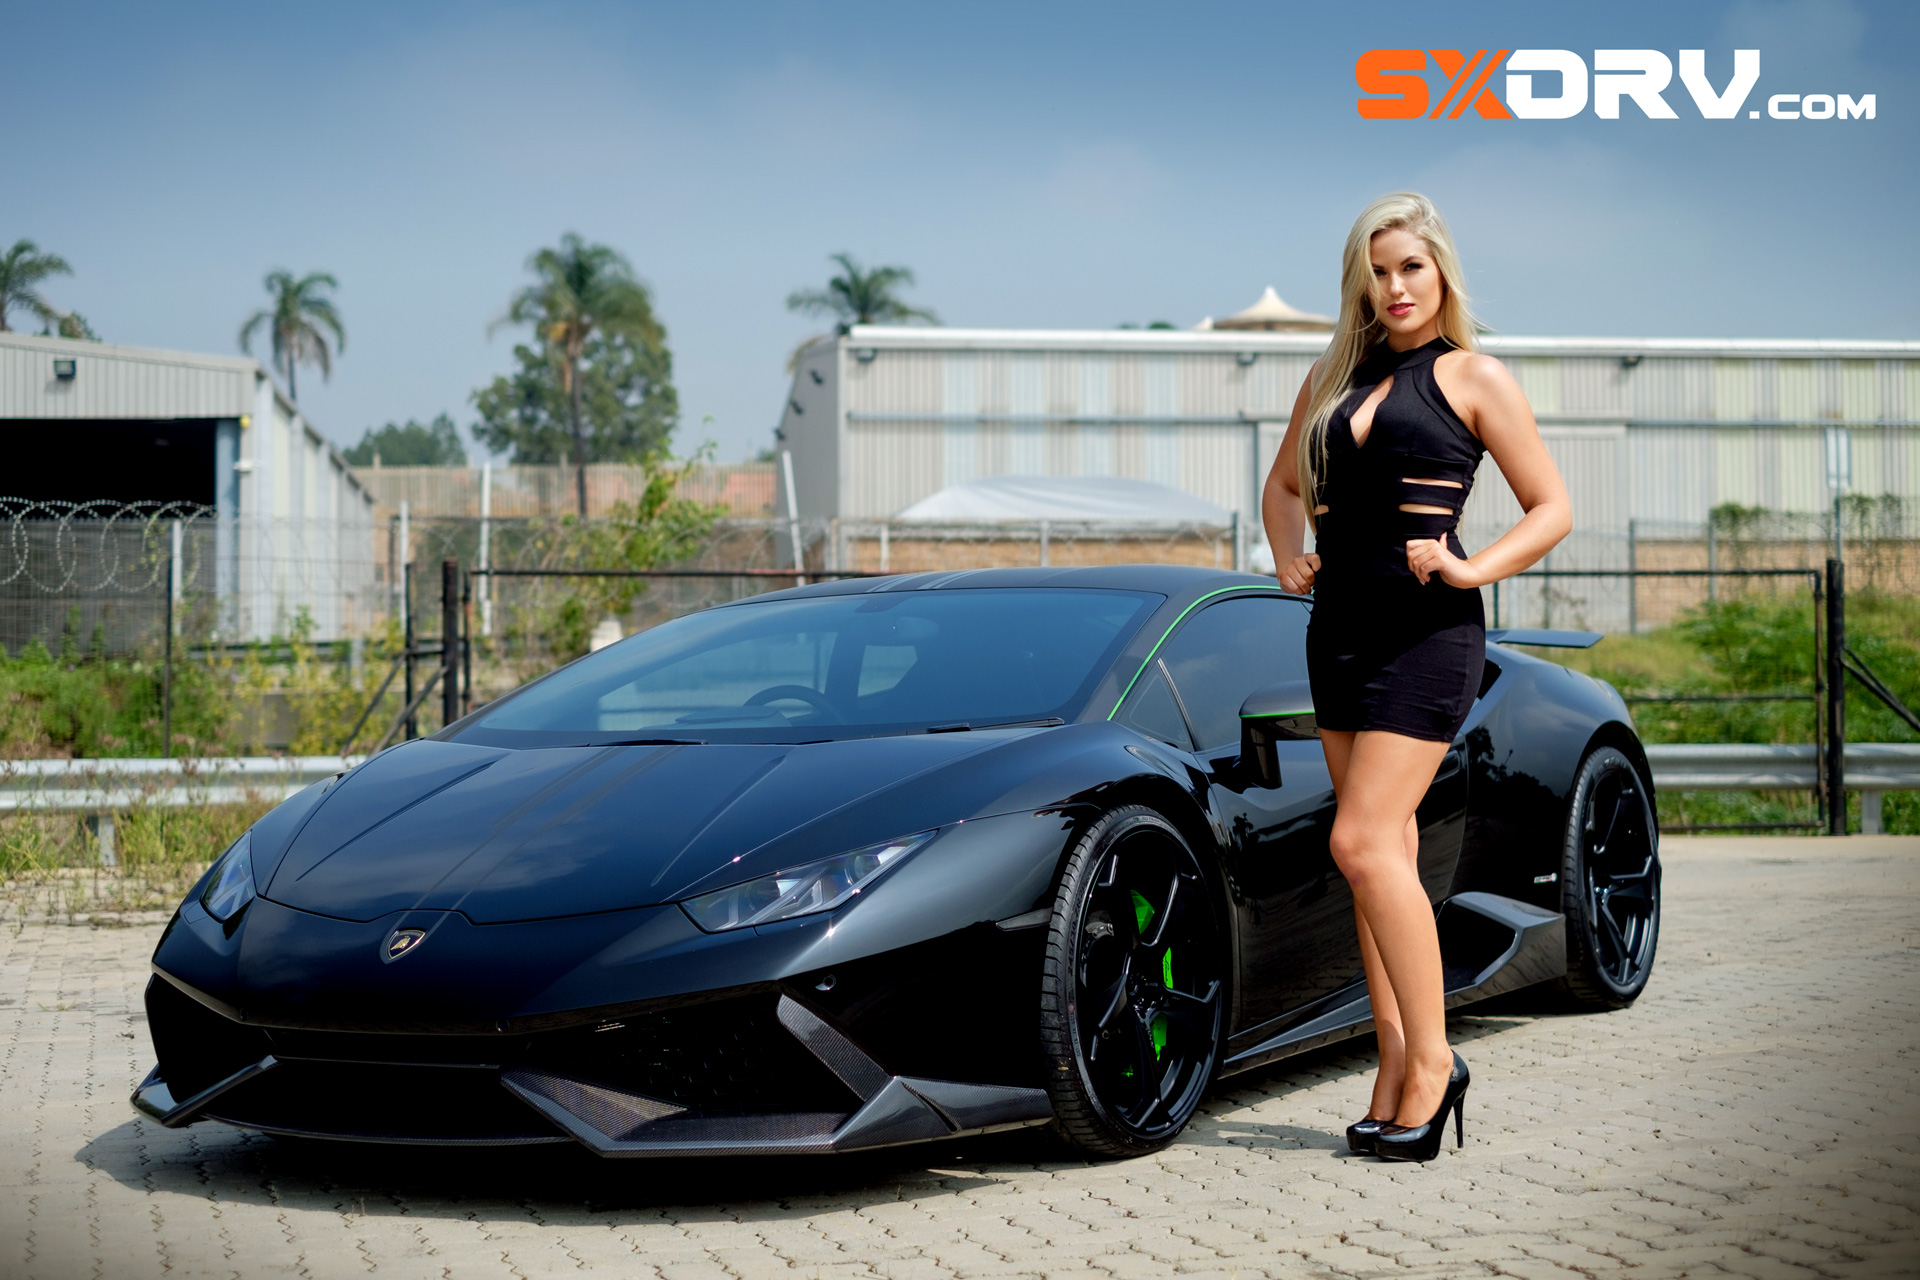 Laura Bishop Lamborghini Huracan Exclusive Interview And Pictures